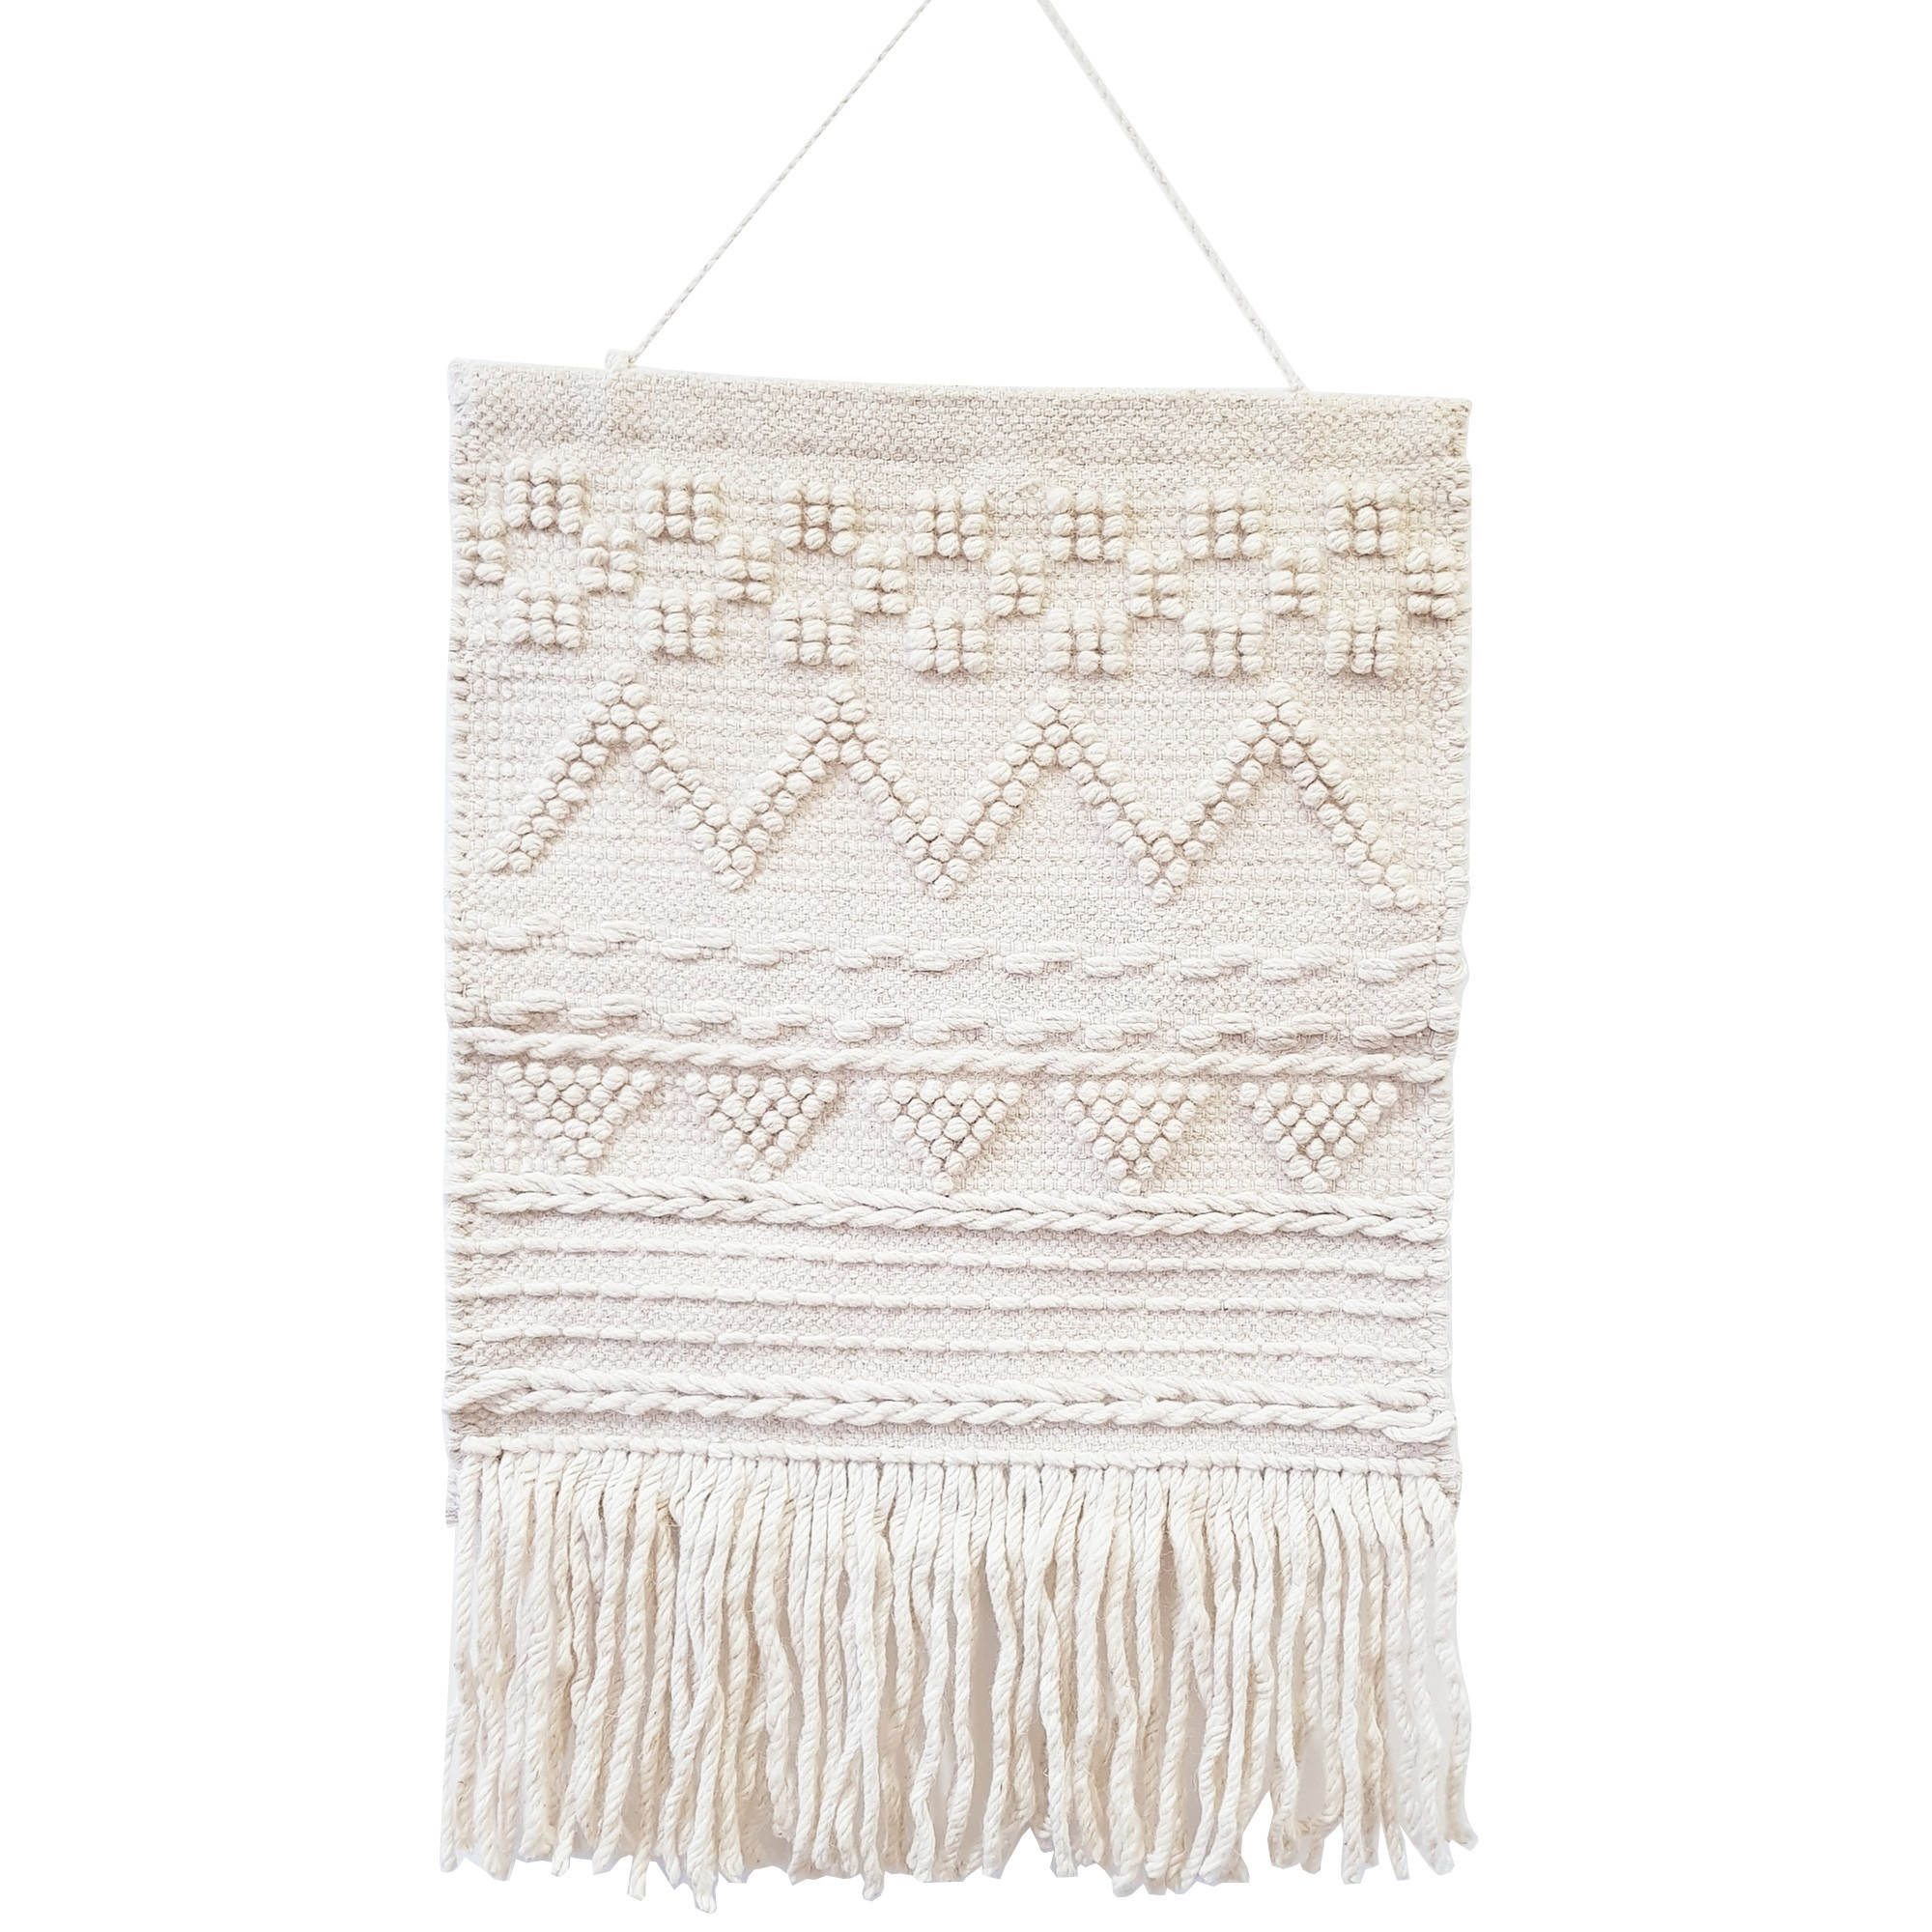 Wiley Handwoven Wool Macrame Wall Hanging